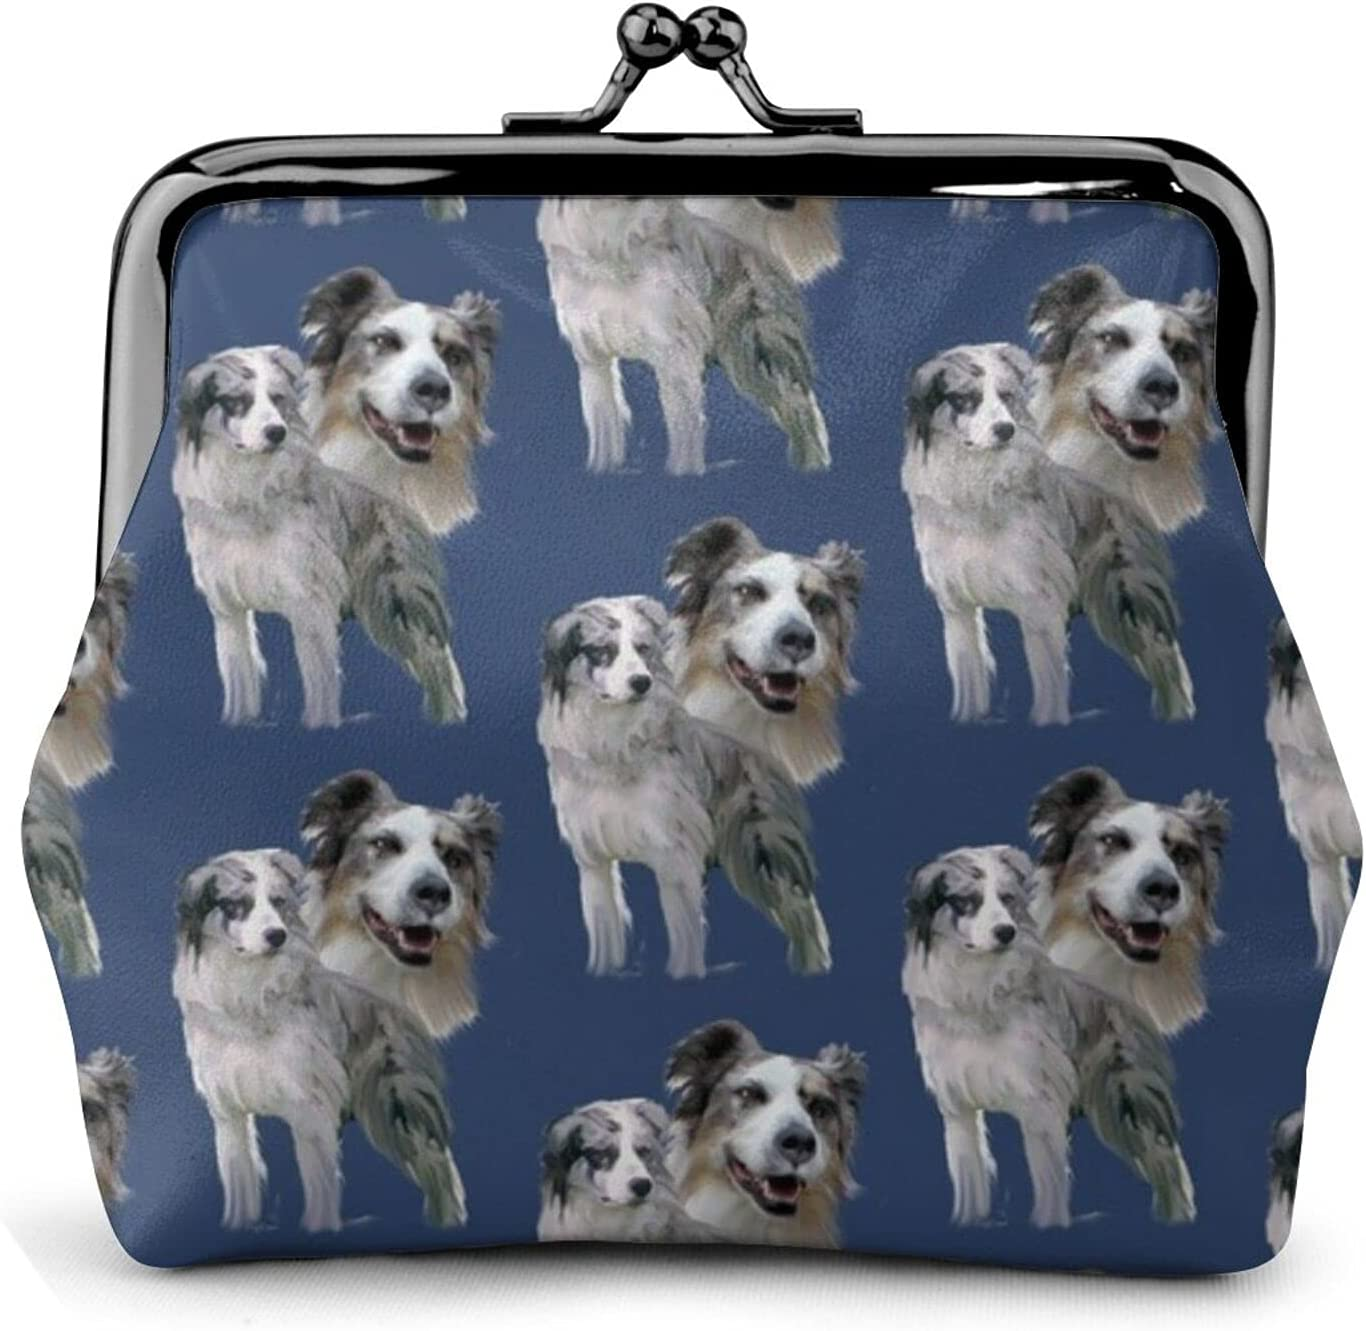 Blue Merle Australian 650 Coin Purse Retro Money Pouch with Kiss-lock Buckle Small Wallet for Women and Girls